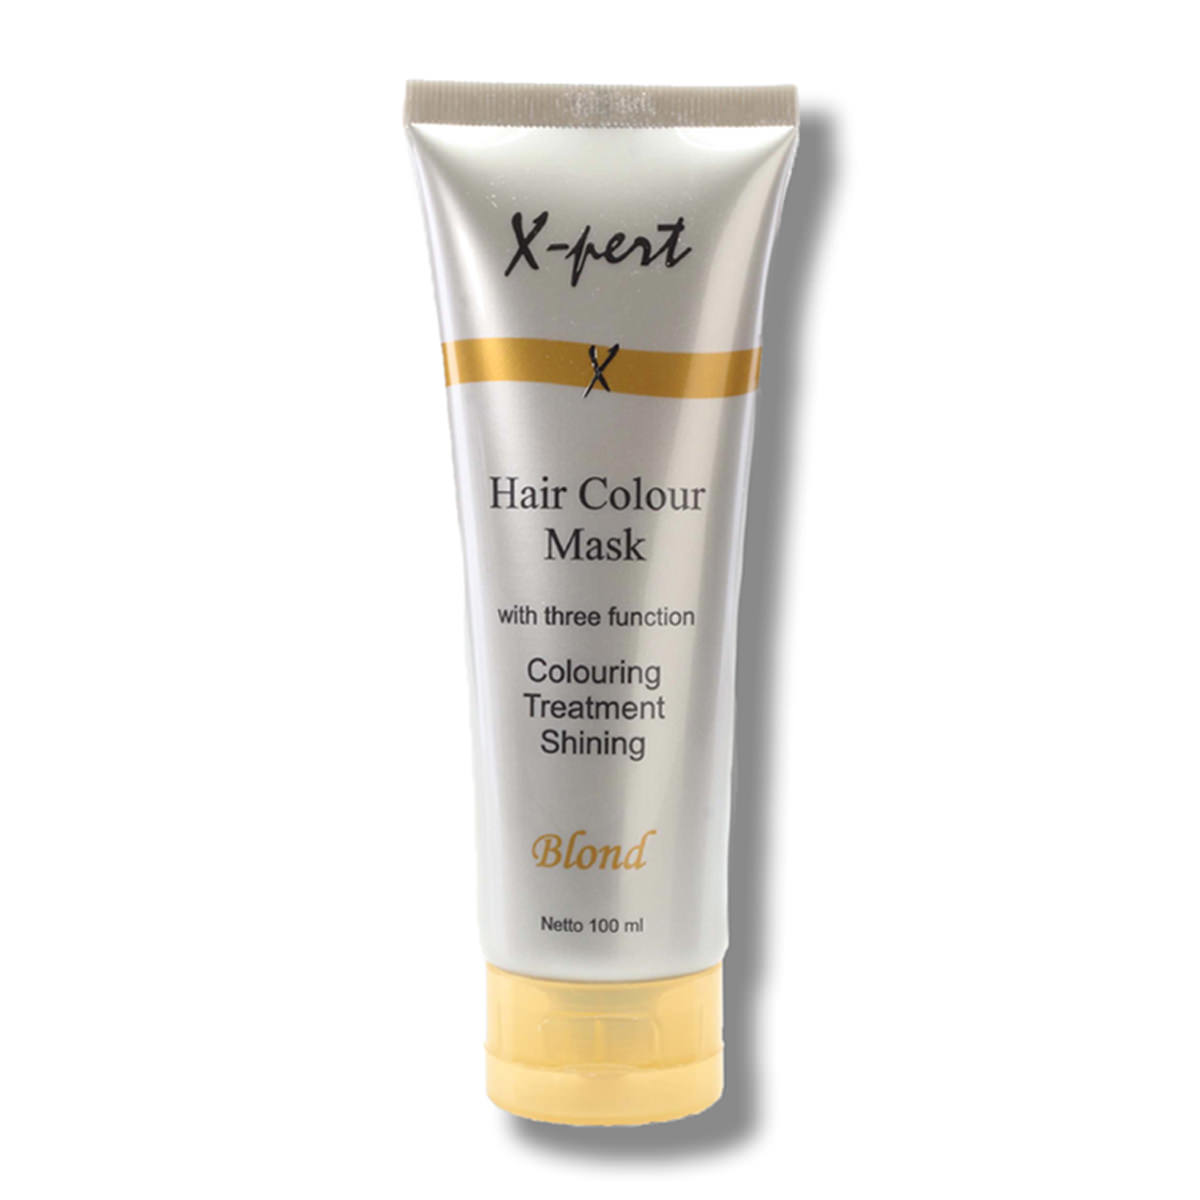 X-pert-Hair-Colour-Mask-Blond-sfw (2)